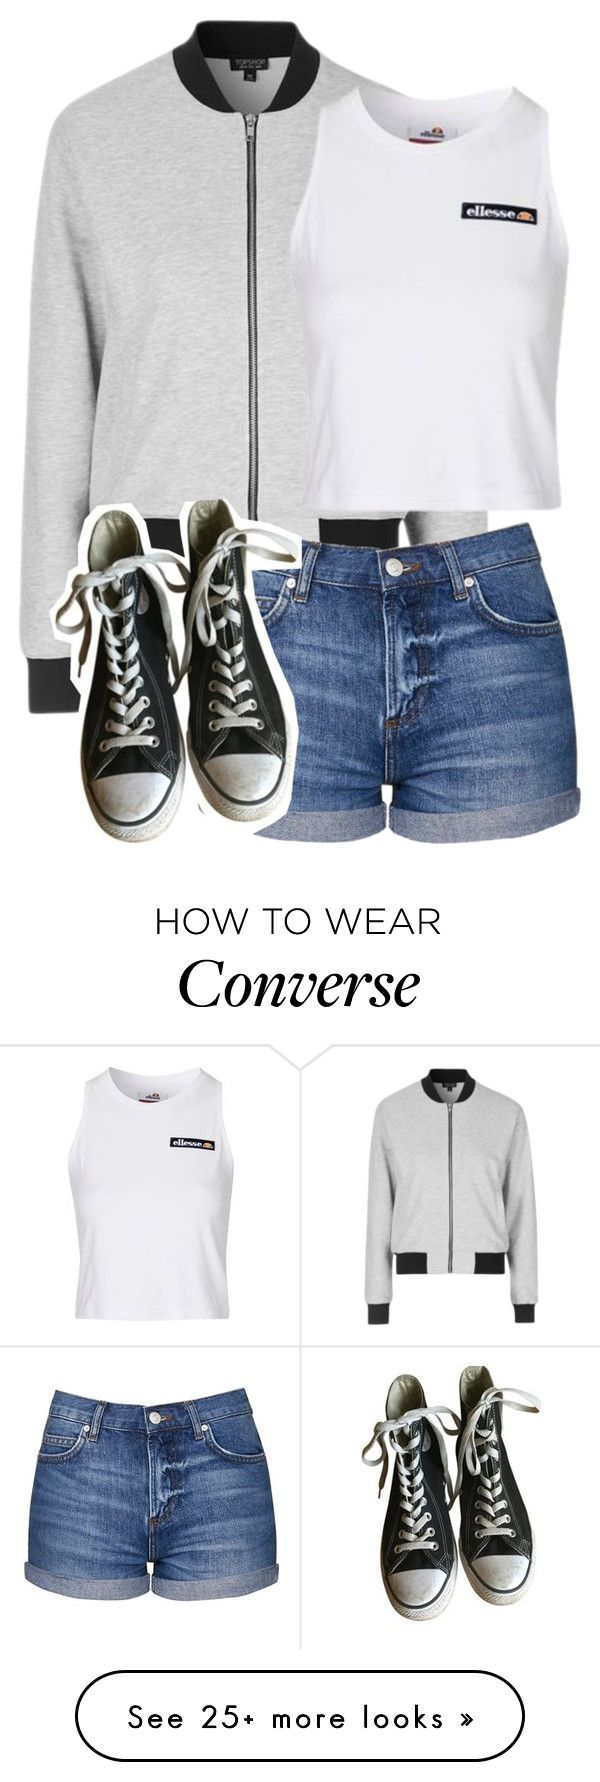 """""""Untitled #1346"""" by chaoticaphrodite on Polyvore featuring Topshop and Converse"""